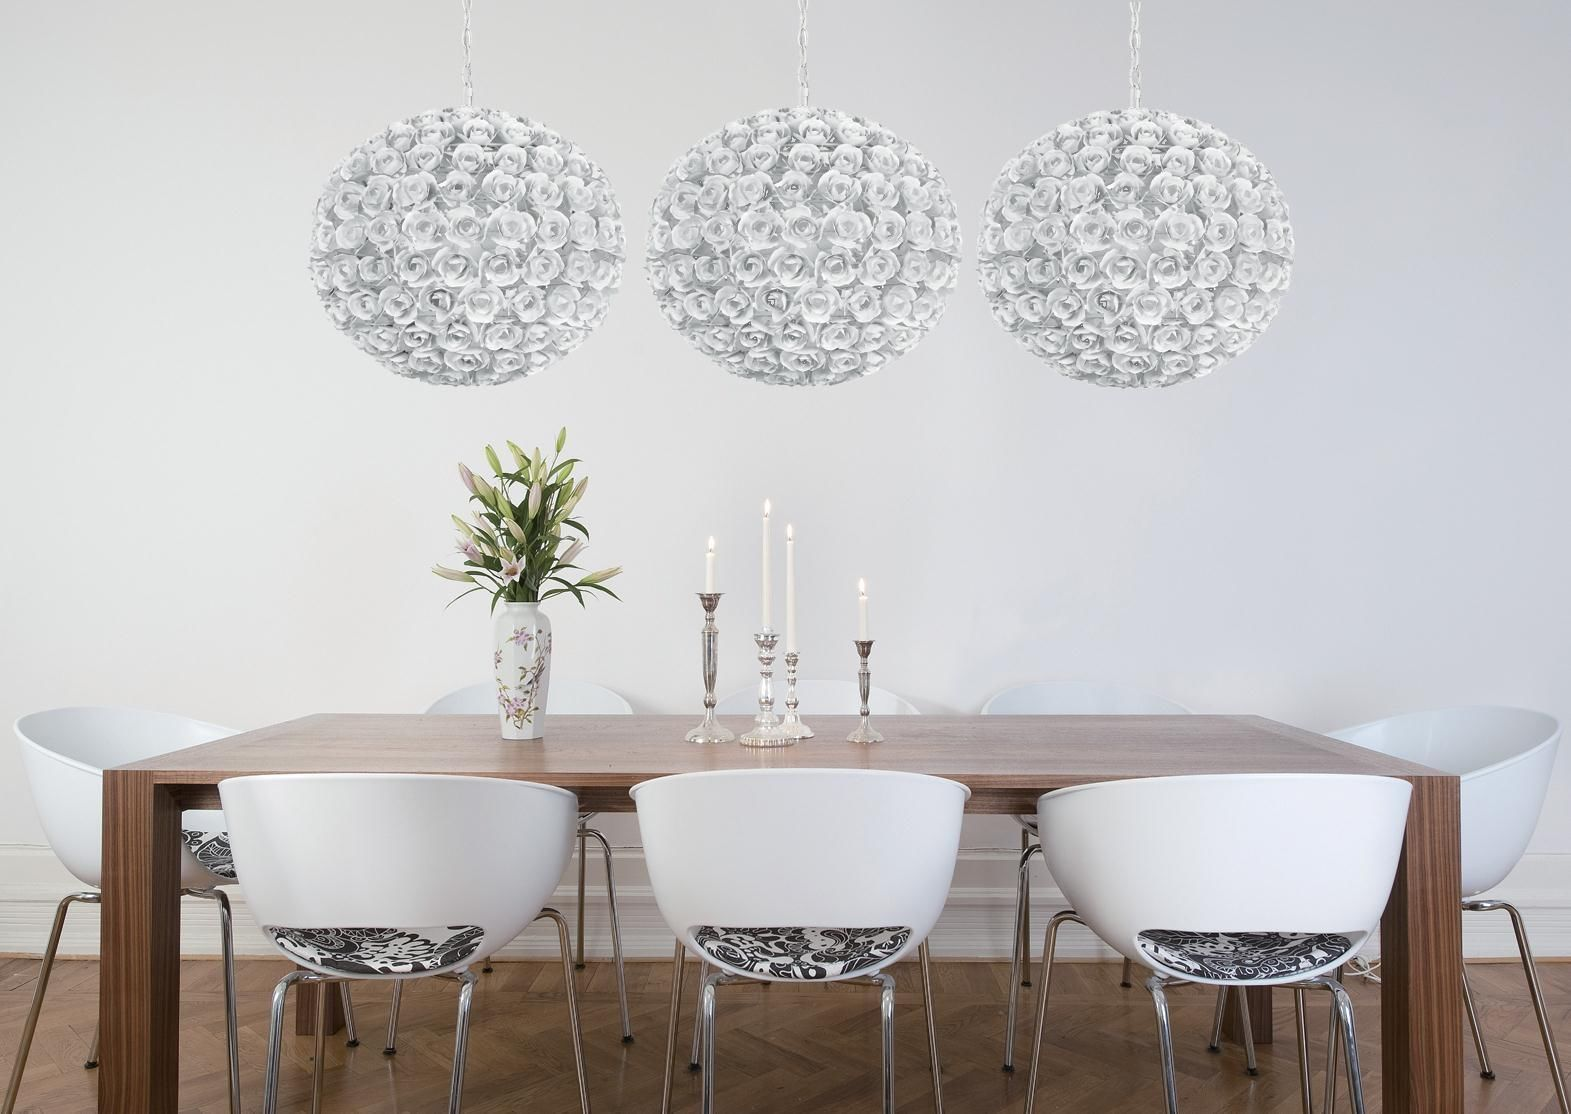 Primary image for White Globe Orb Chandelier Shiny Coastal Urban Modern Contemporary Euro Style